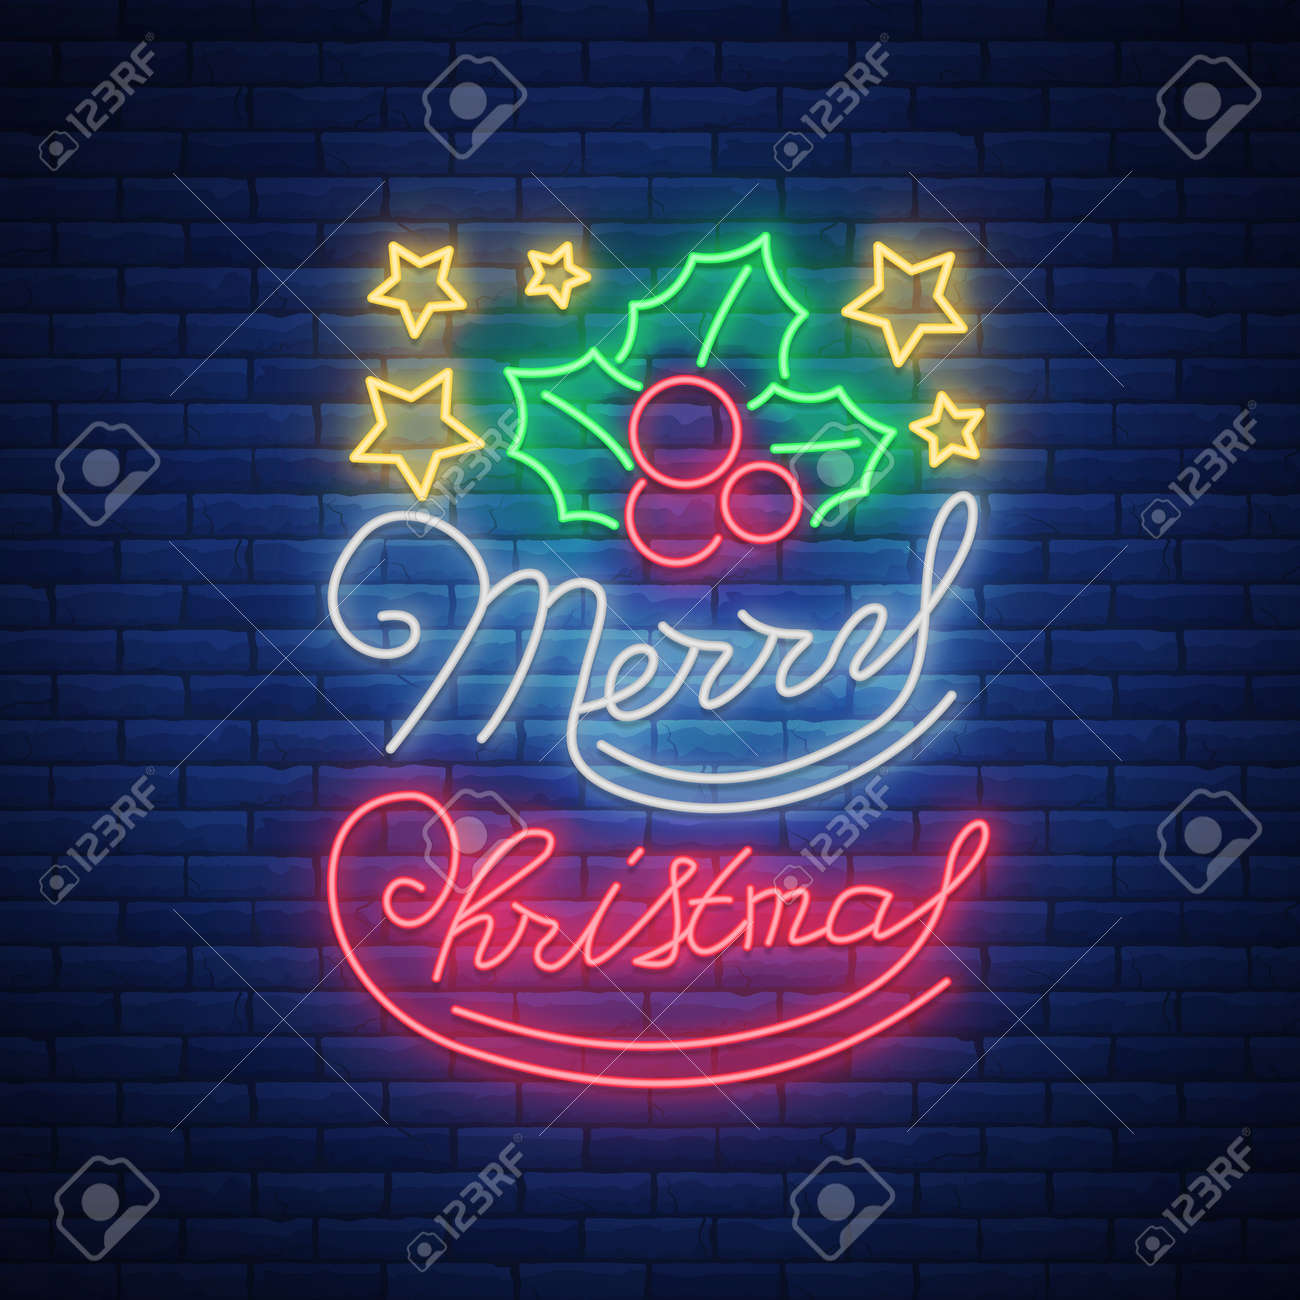 Christmas Done Bright.Merry Christmas Welcome Card Done In Neon Style Isolated Neon